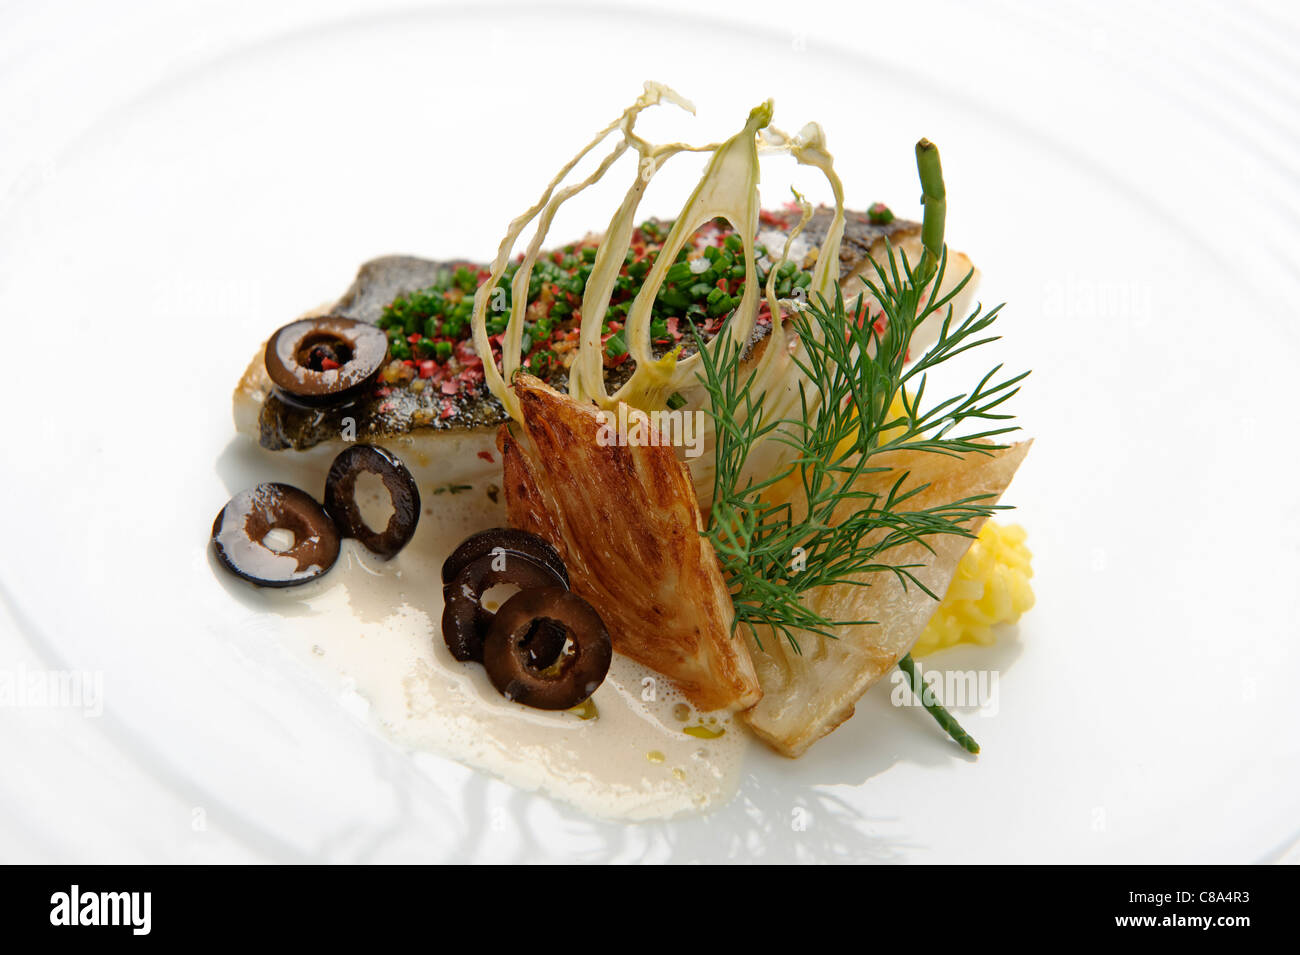 Nouvelle cuisine gourmet fish dish stock photo royalty free image 39561287 alamy for Nouvelle cuisine